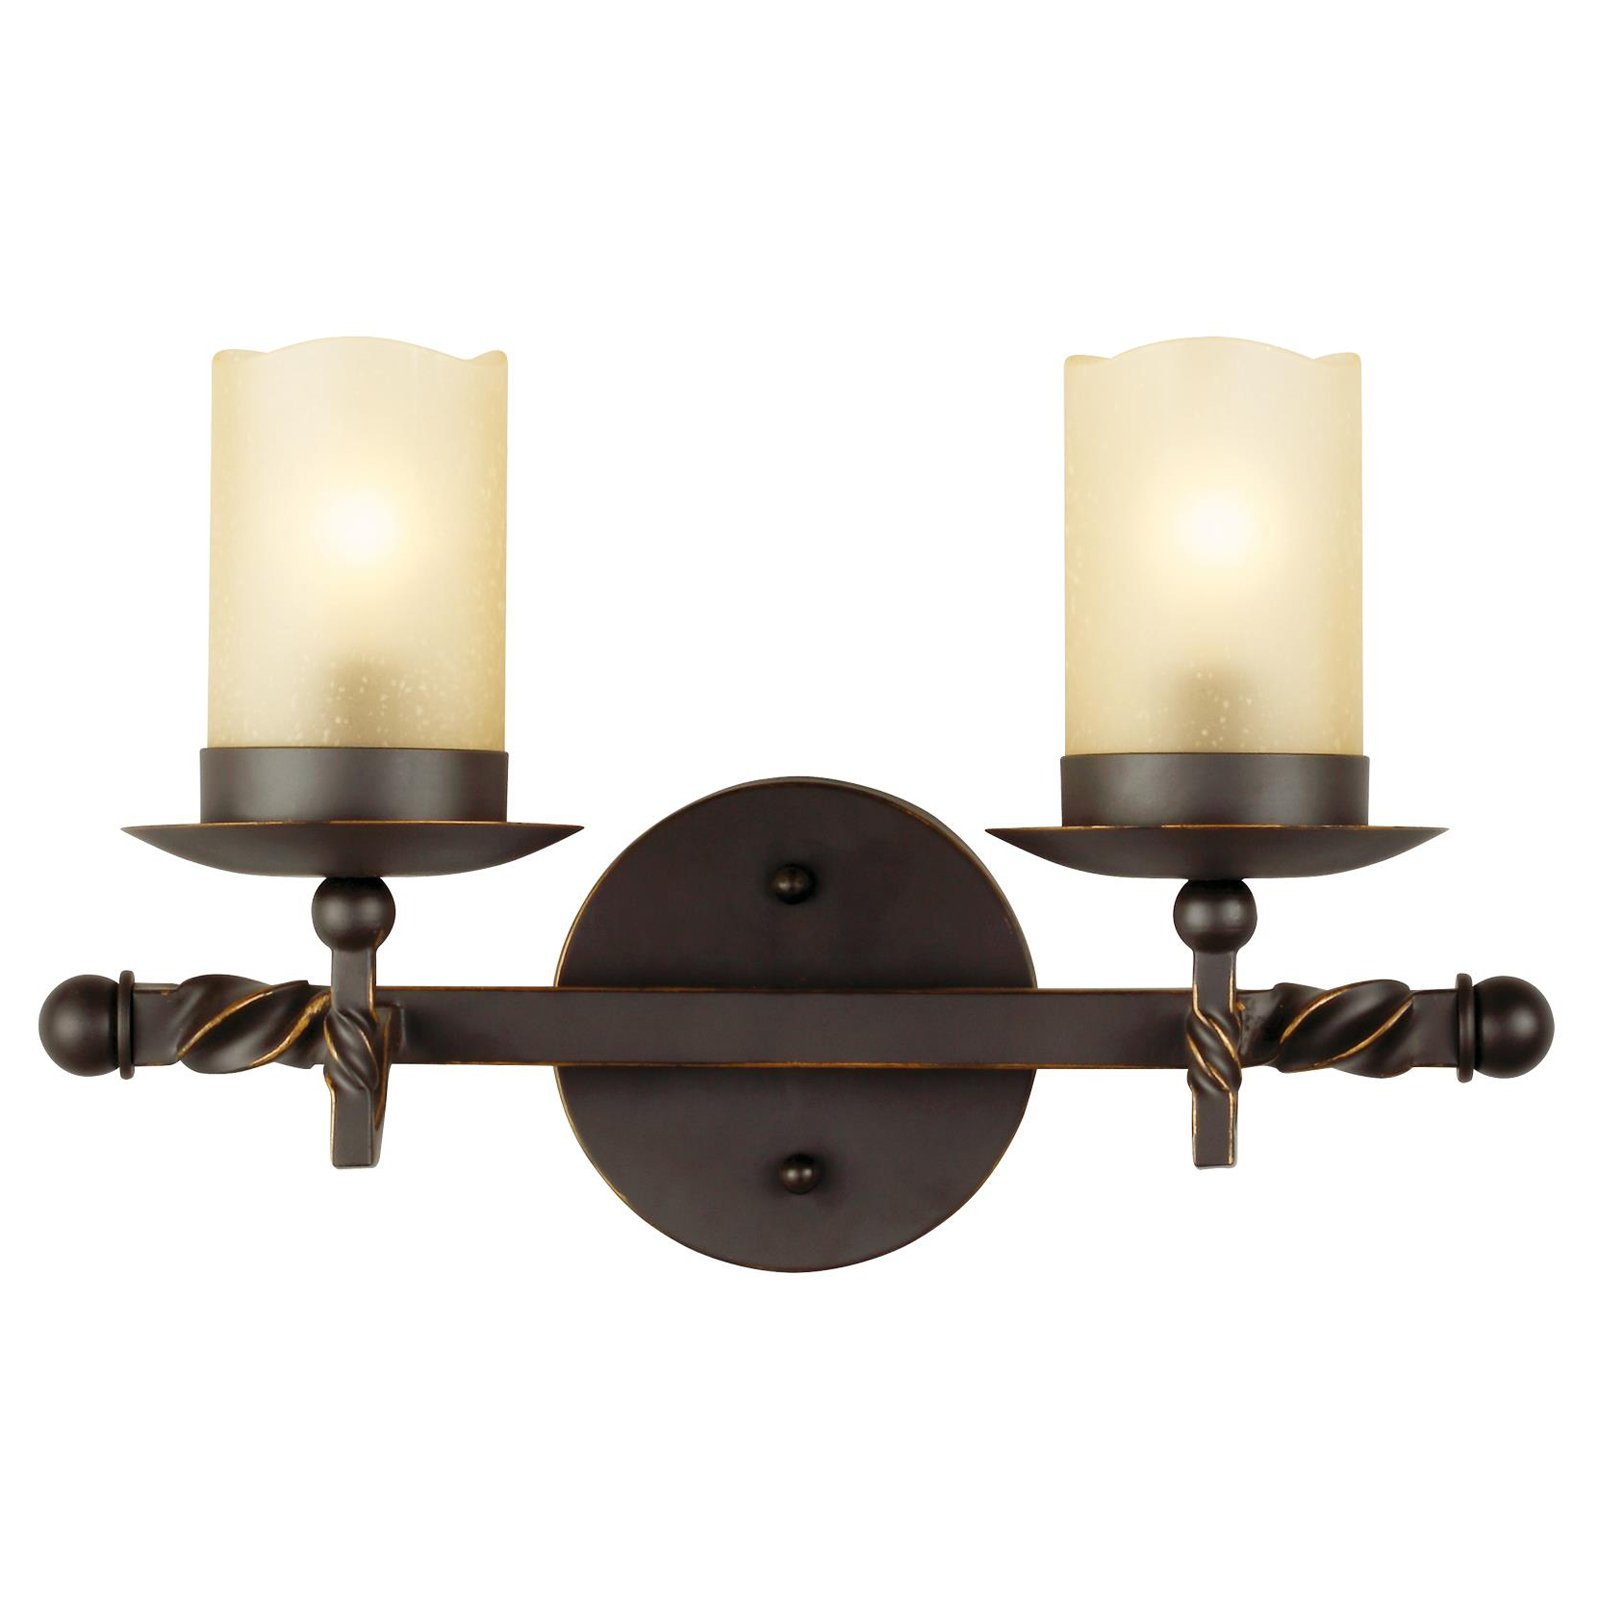 Sea Gull Lighting Trempealeau 4410602-191 2-Light Wall / Bath Light